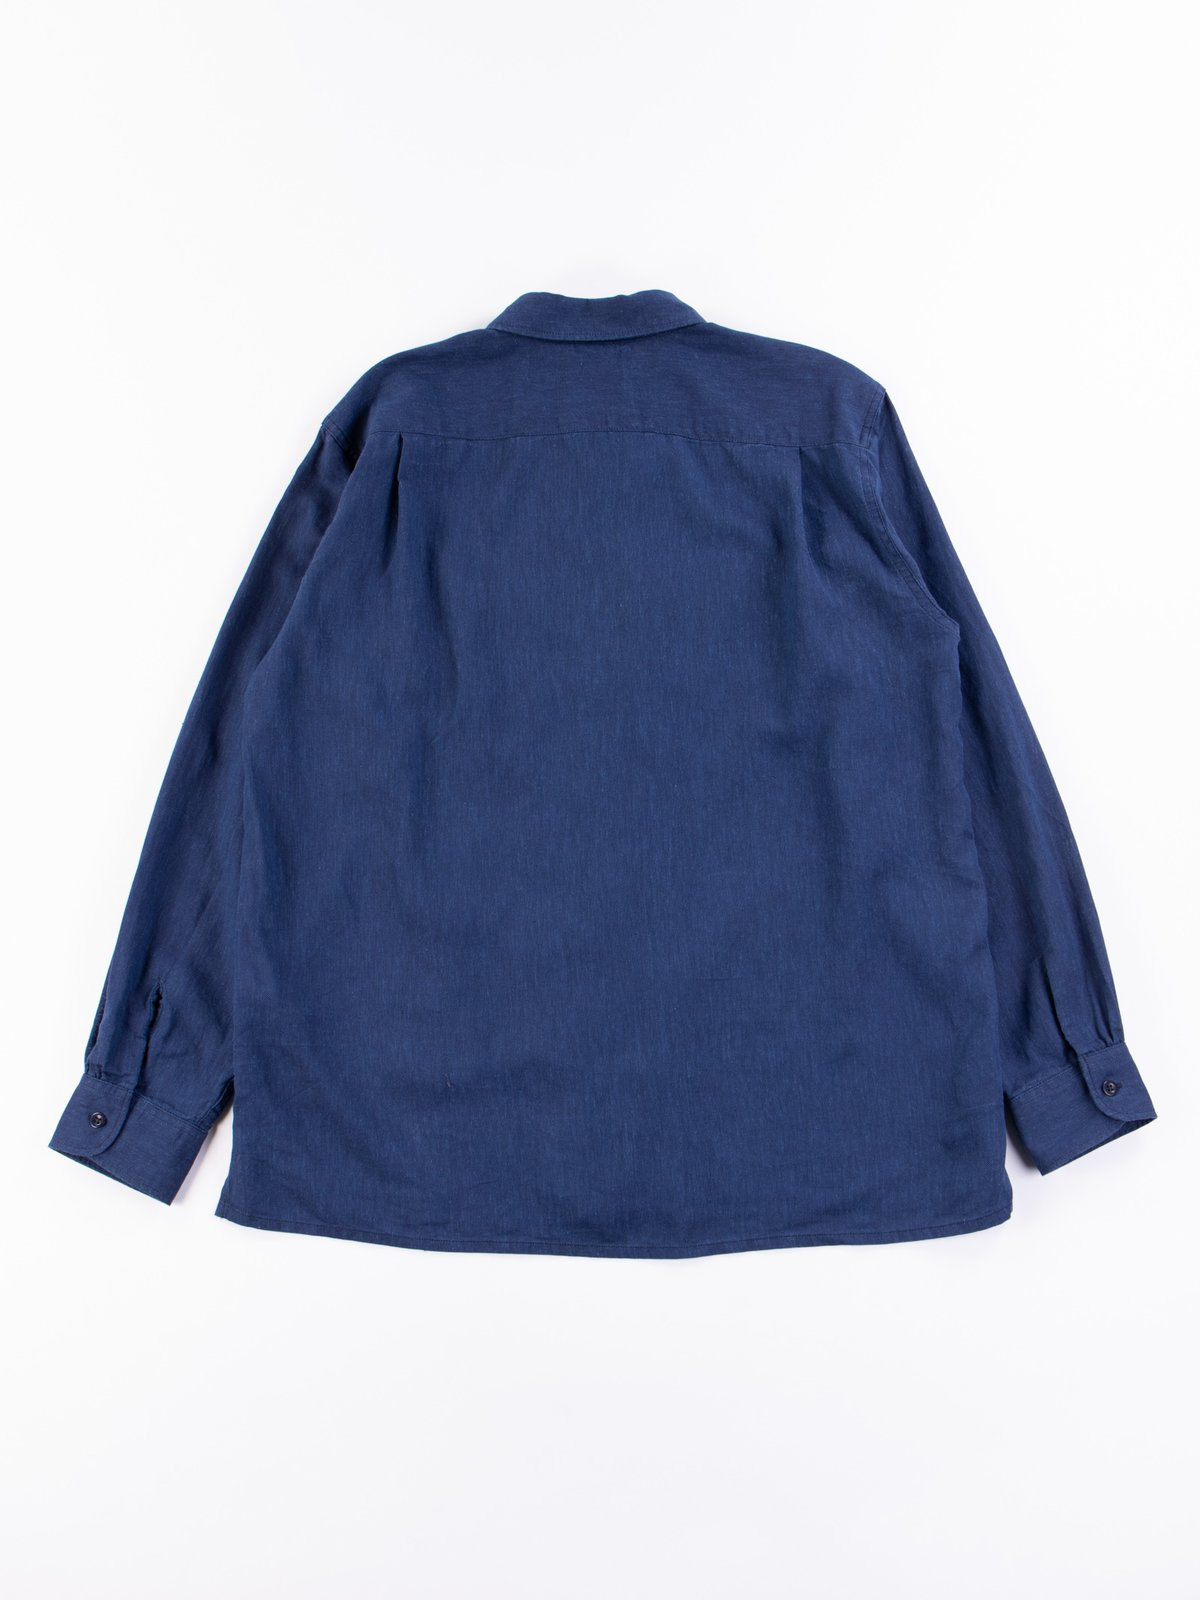 Navy CL Solid Classic Shirt - Image 6